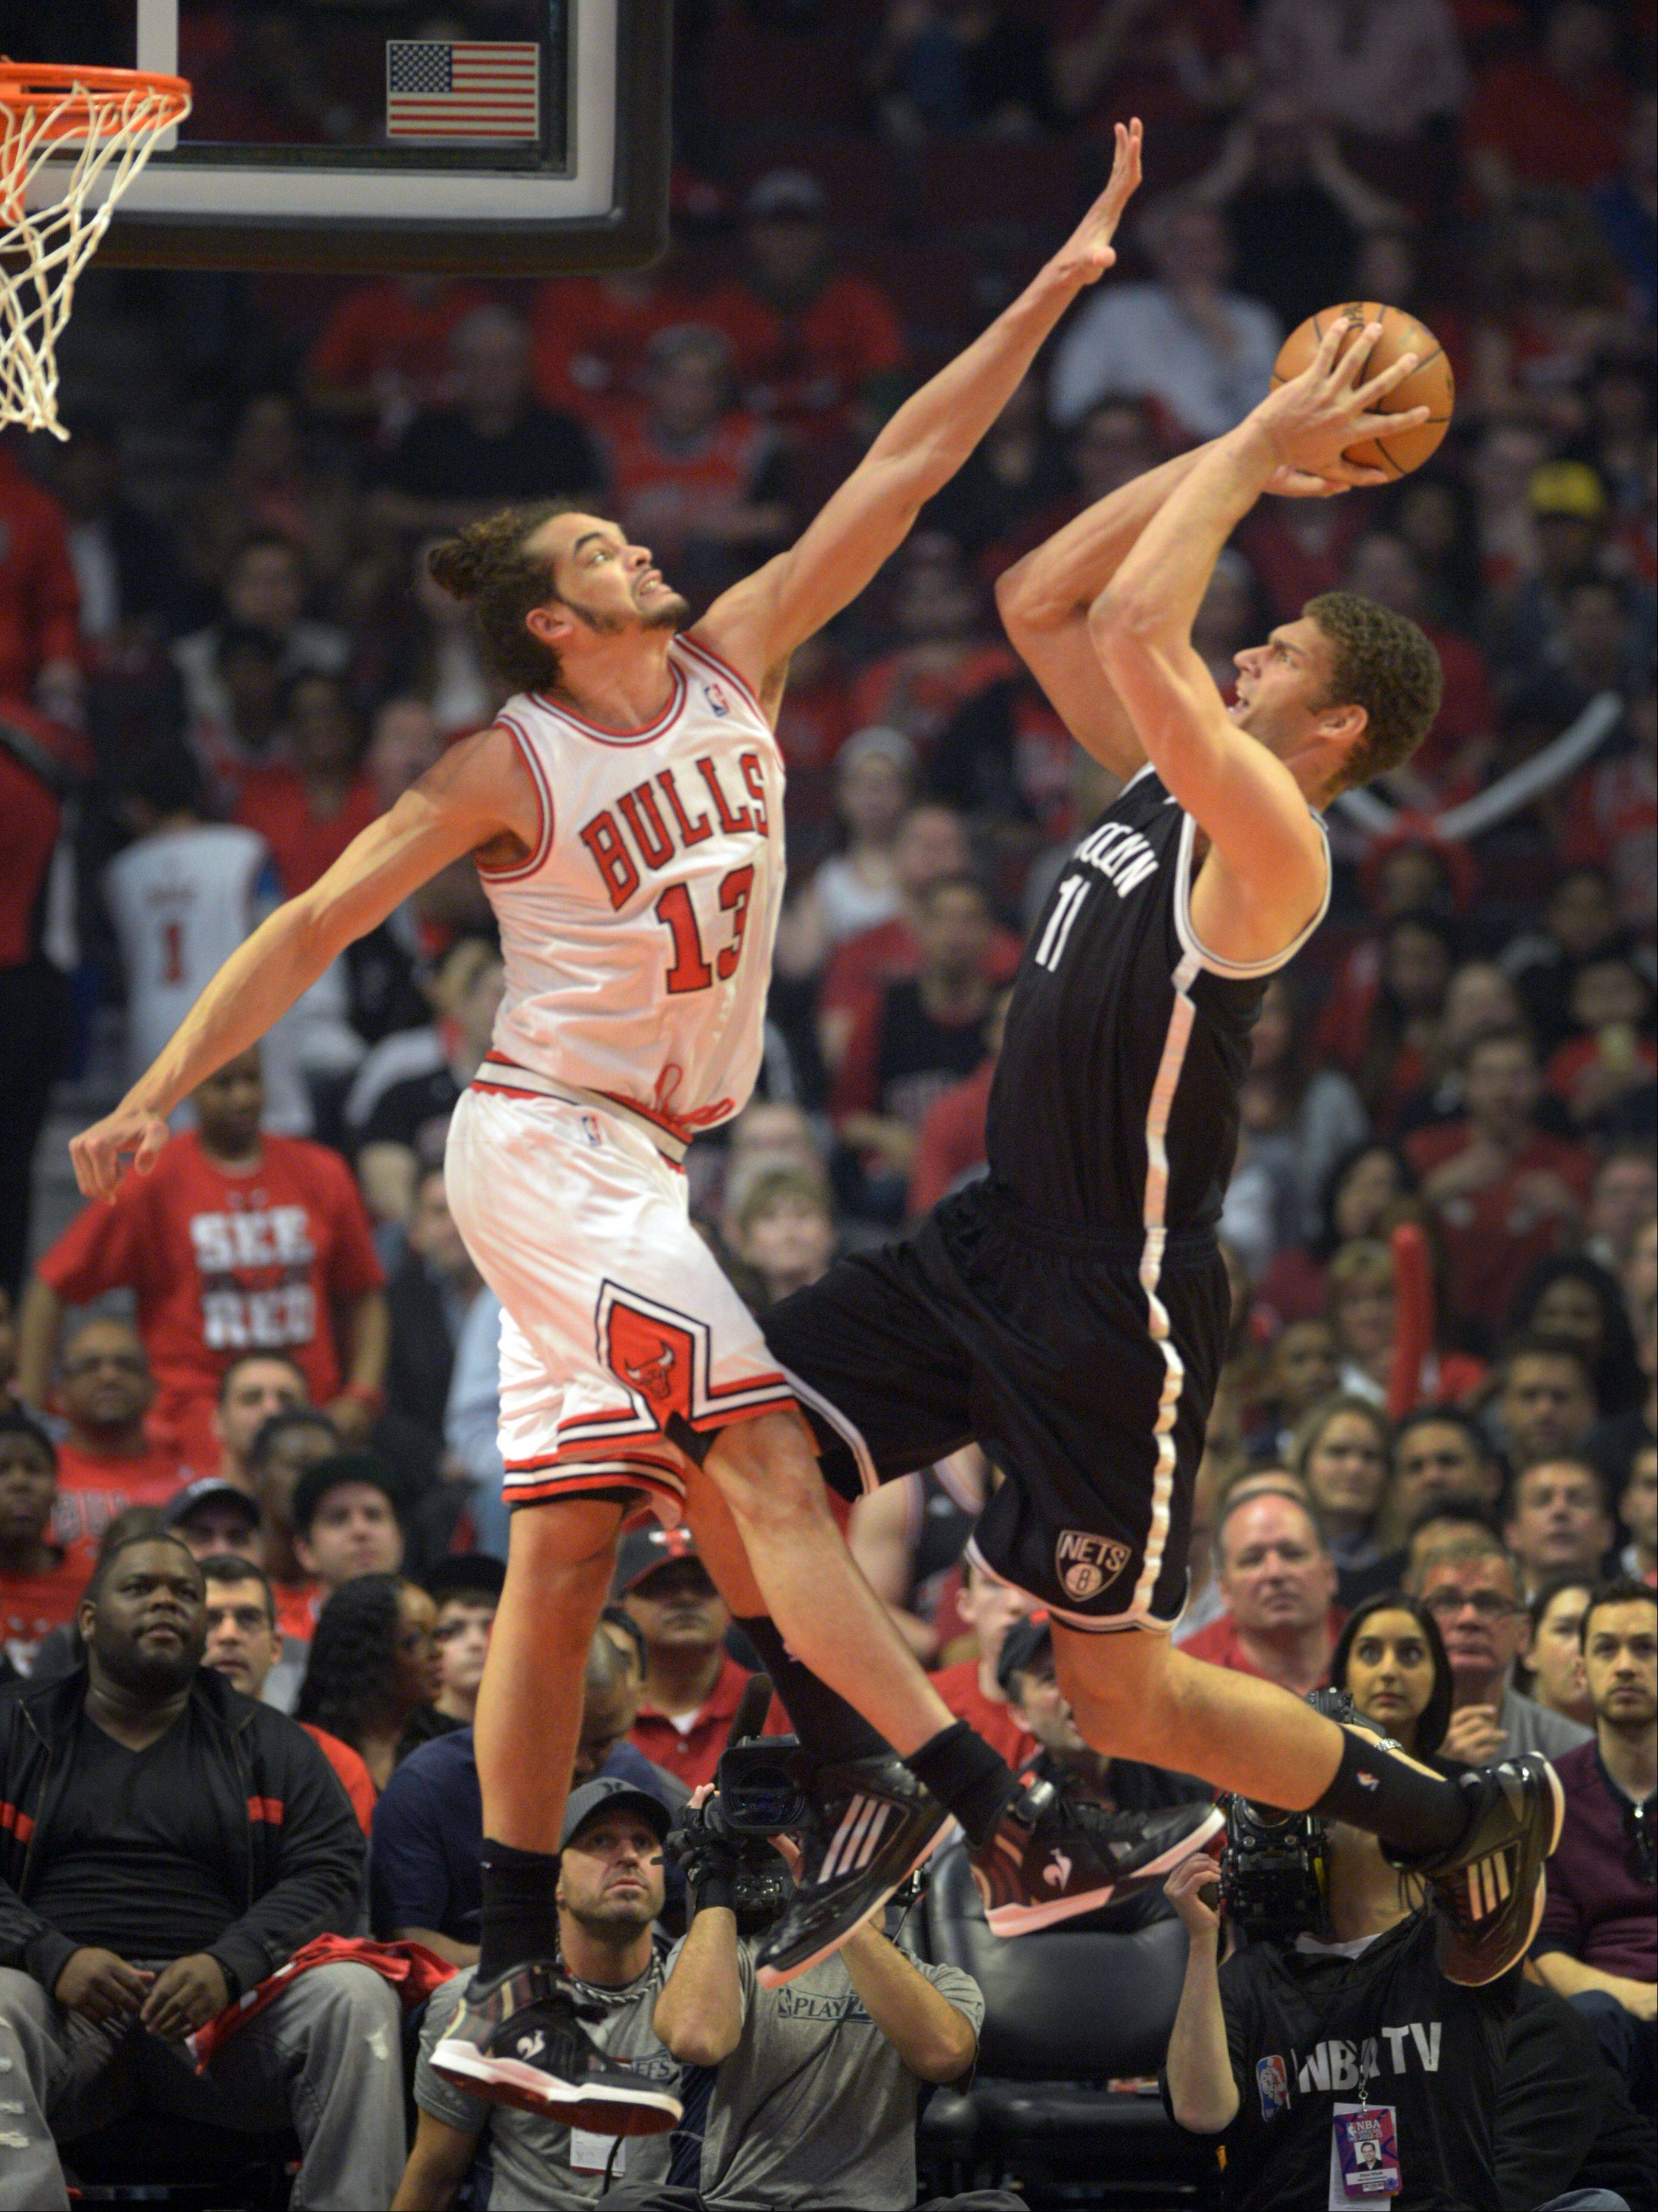 Joakim Noah, left, puts pressure on Brooklyn's Brook Lopez in first quarter action Saturday during game 4 of the first round playoff game against the Brooklyn Nets at the United Center. The Bulls won in triple overtime 142-134